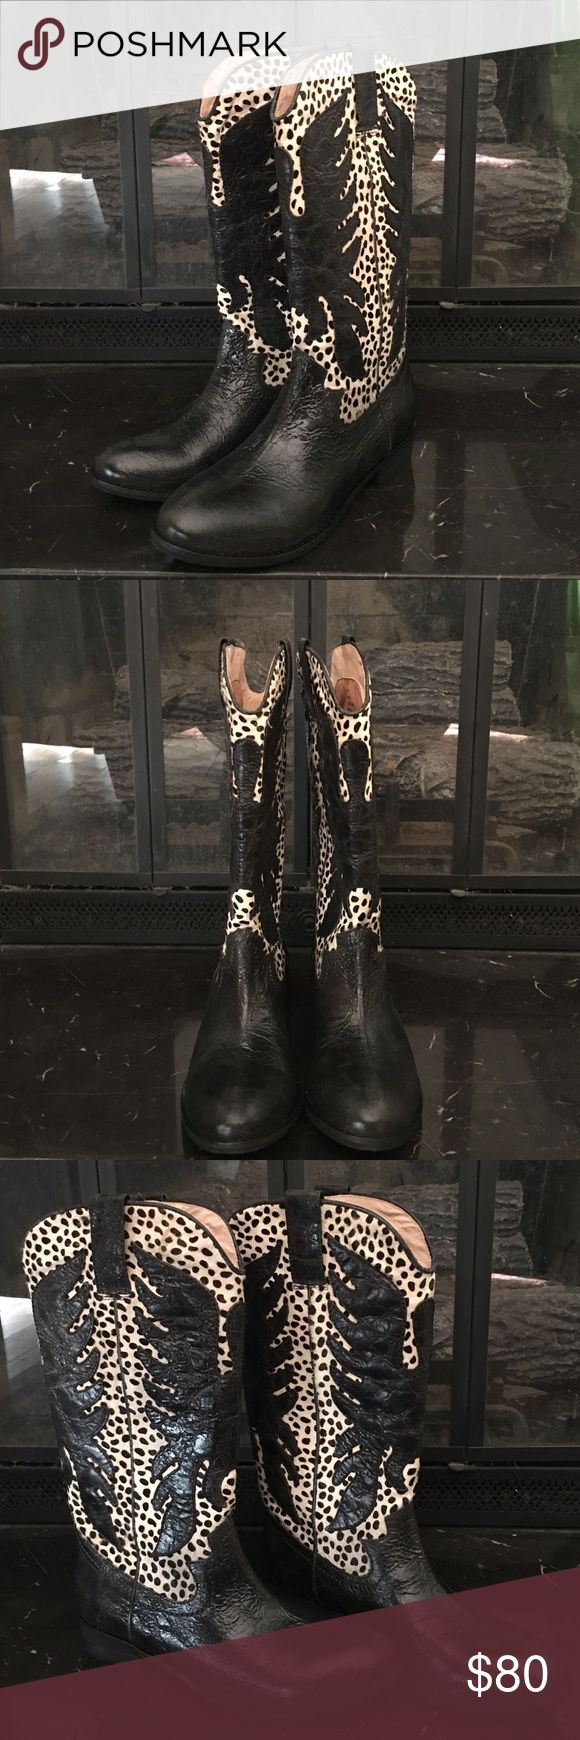 New Mia black horsehair leather cowboy boots Brand new in box never worn black leather and fitted horsehair cowboy boots in Dalmatian print with big eagles. Amazing genuine leather boots! MIA Shoes Ankle Boots & Booties